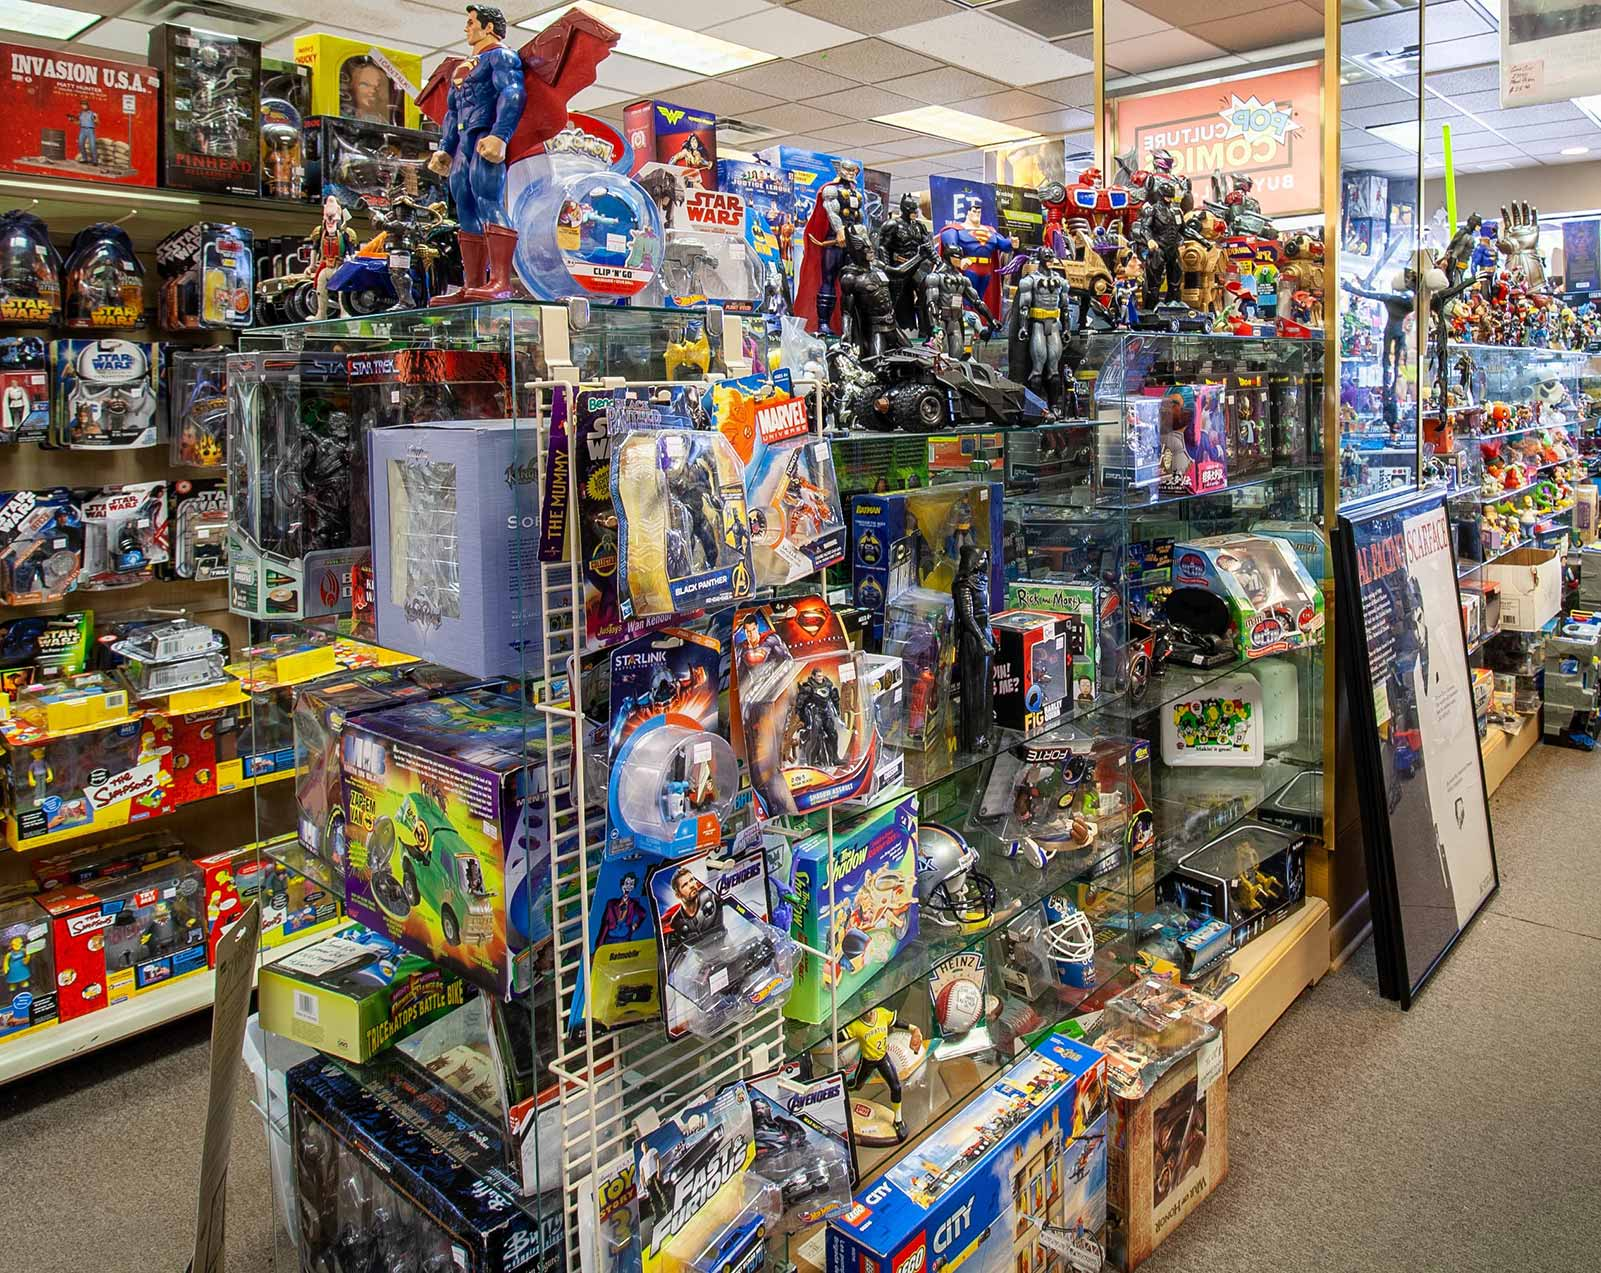 All varieties of toys available